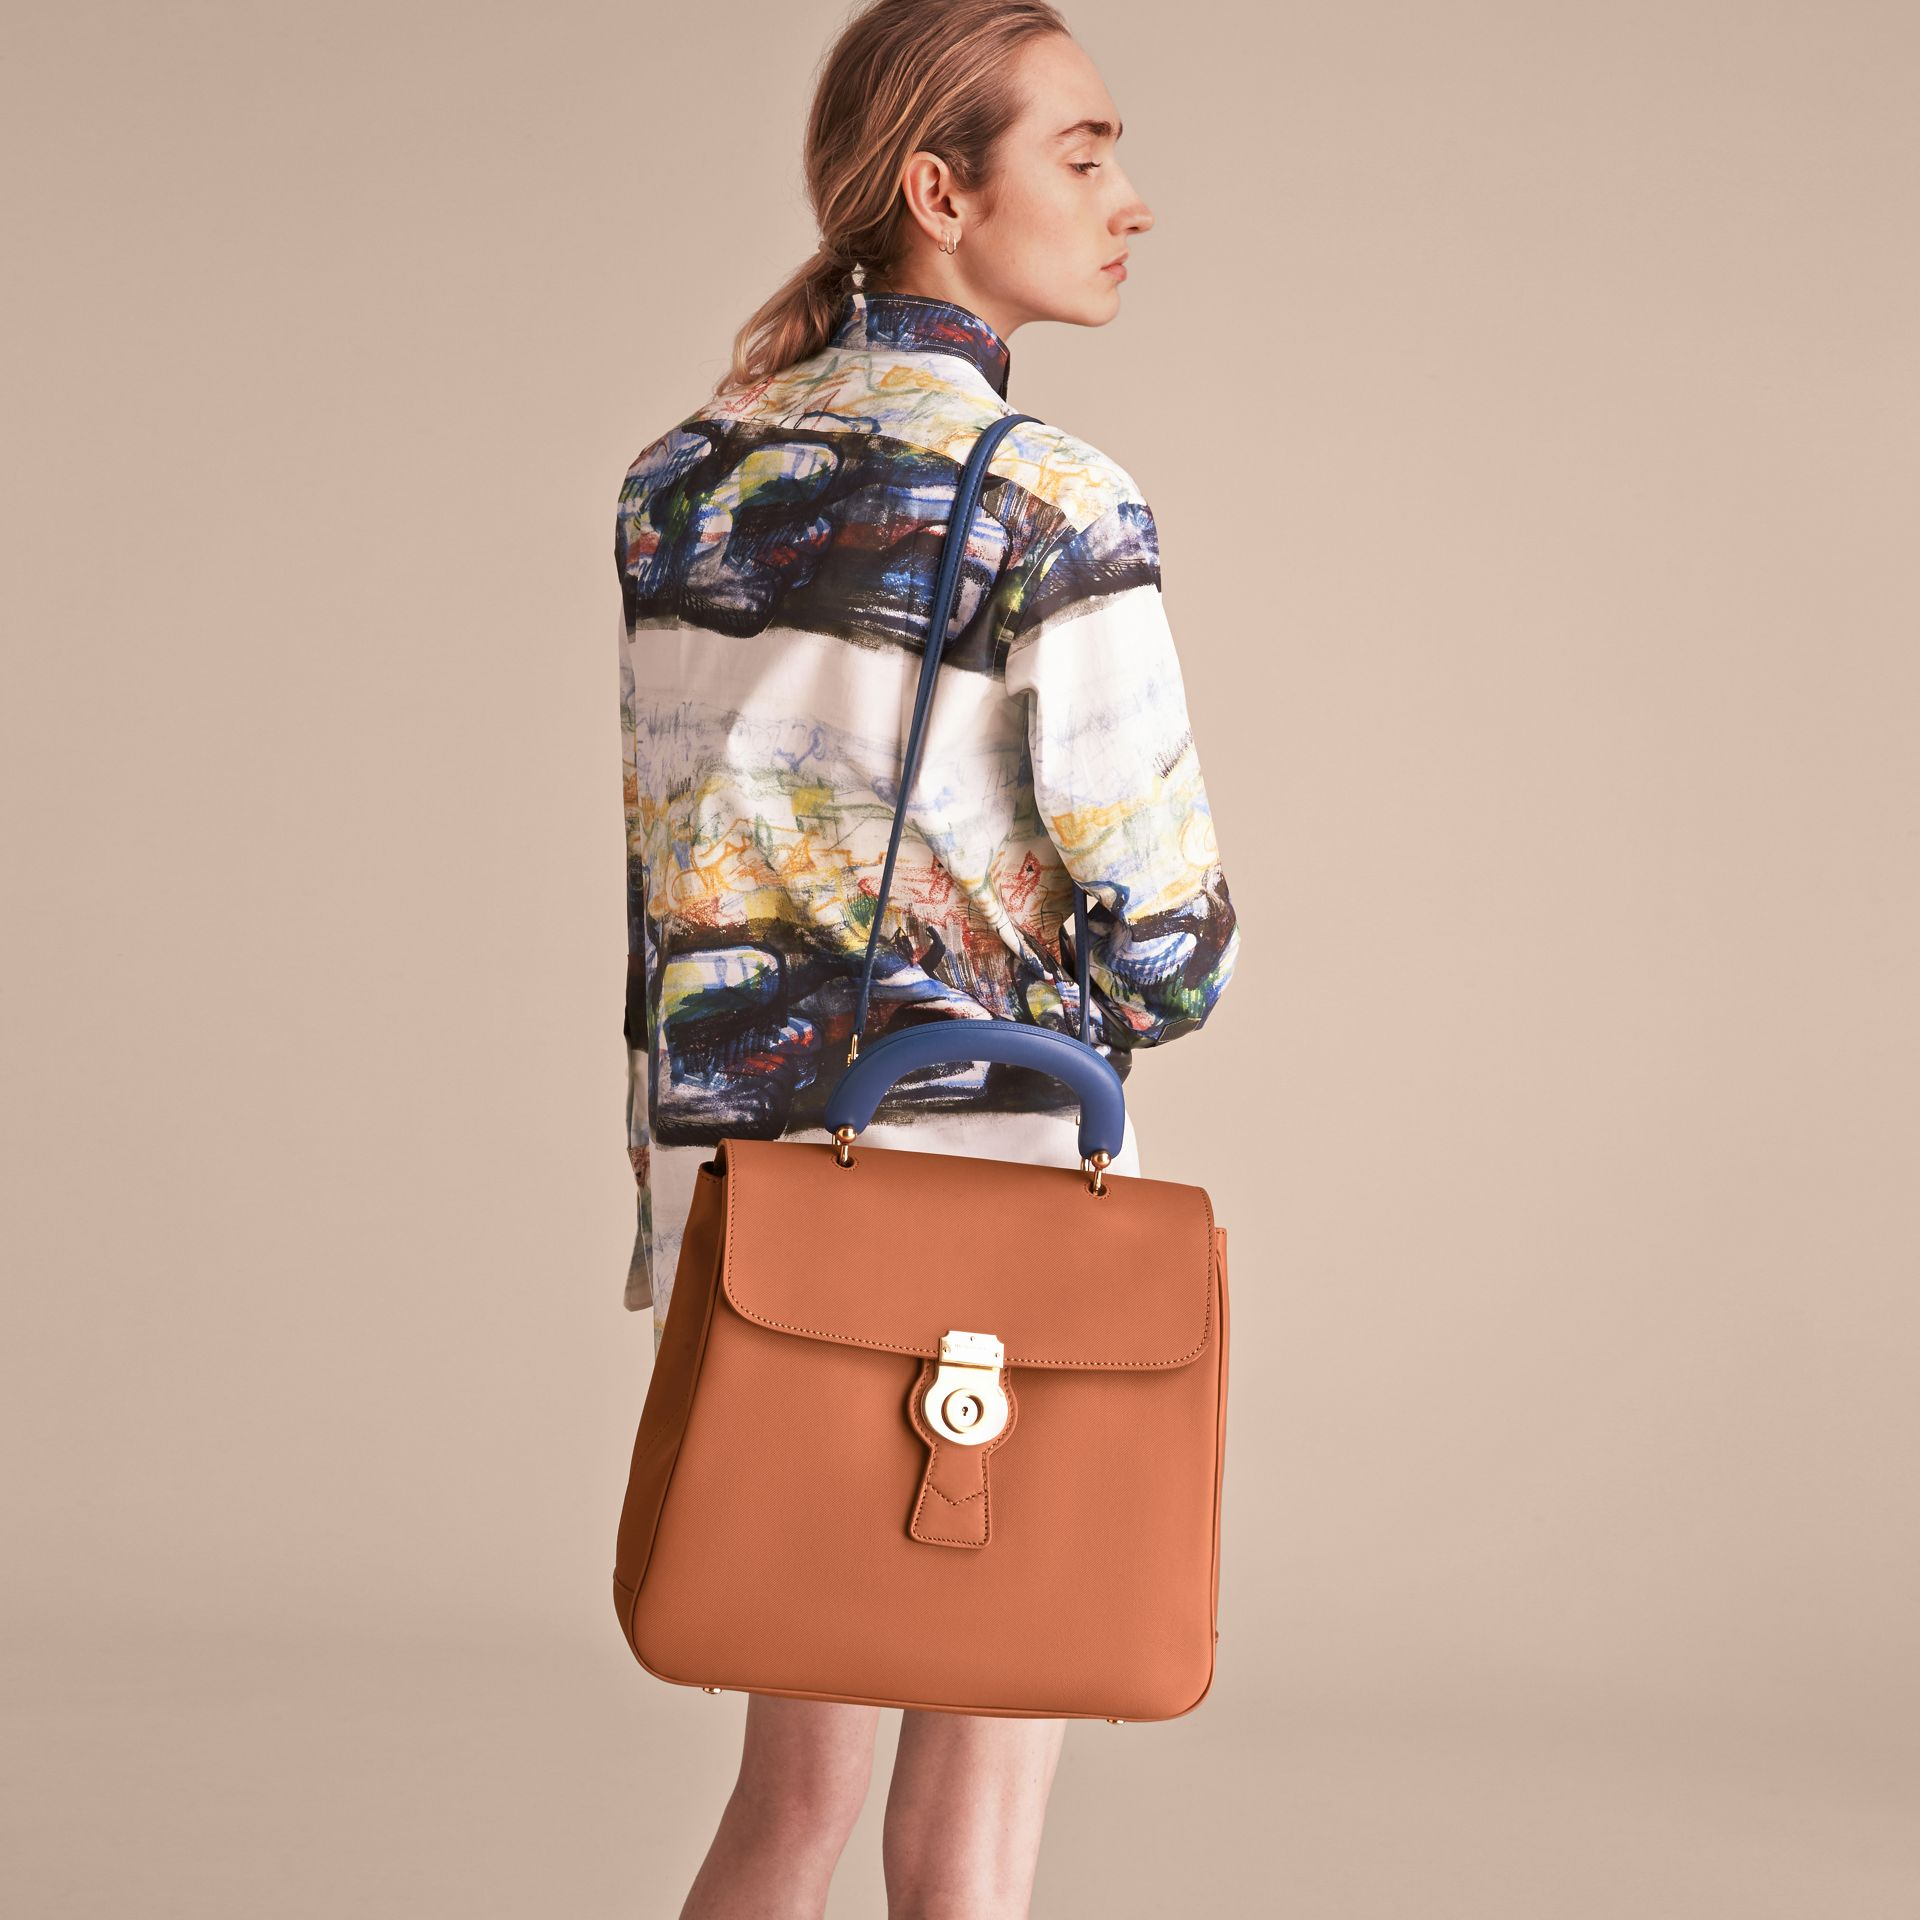 The Large DK88 Top Handle Bag in Bright Toffee - Women | Burberry - gallery image 9